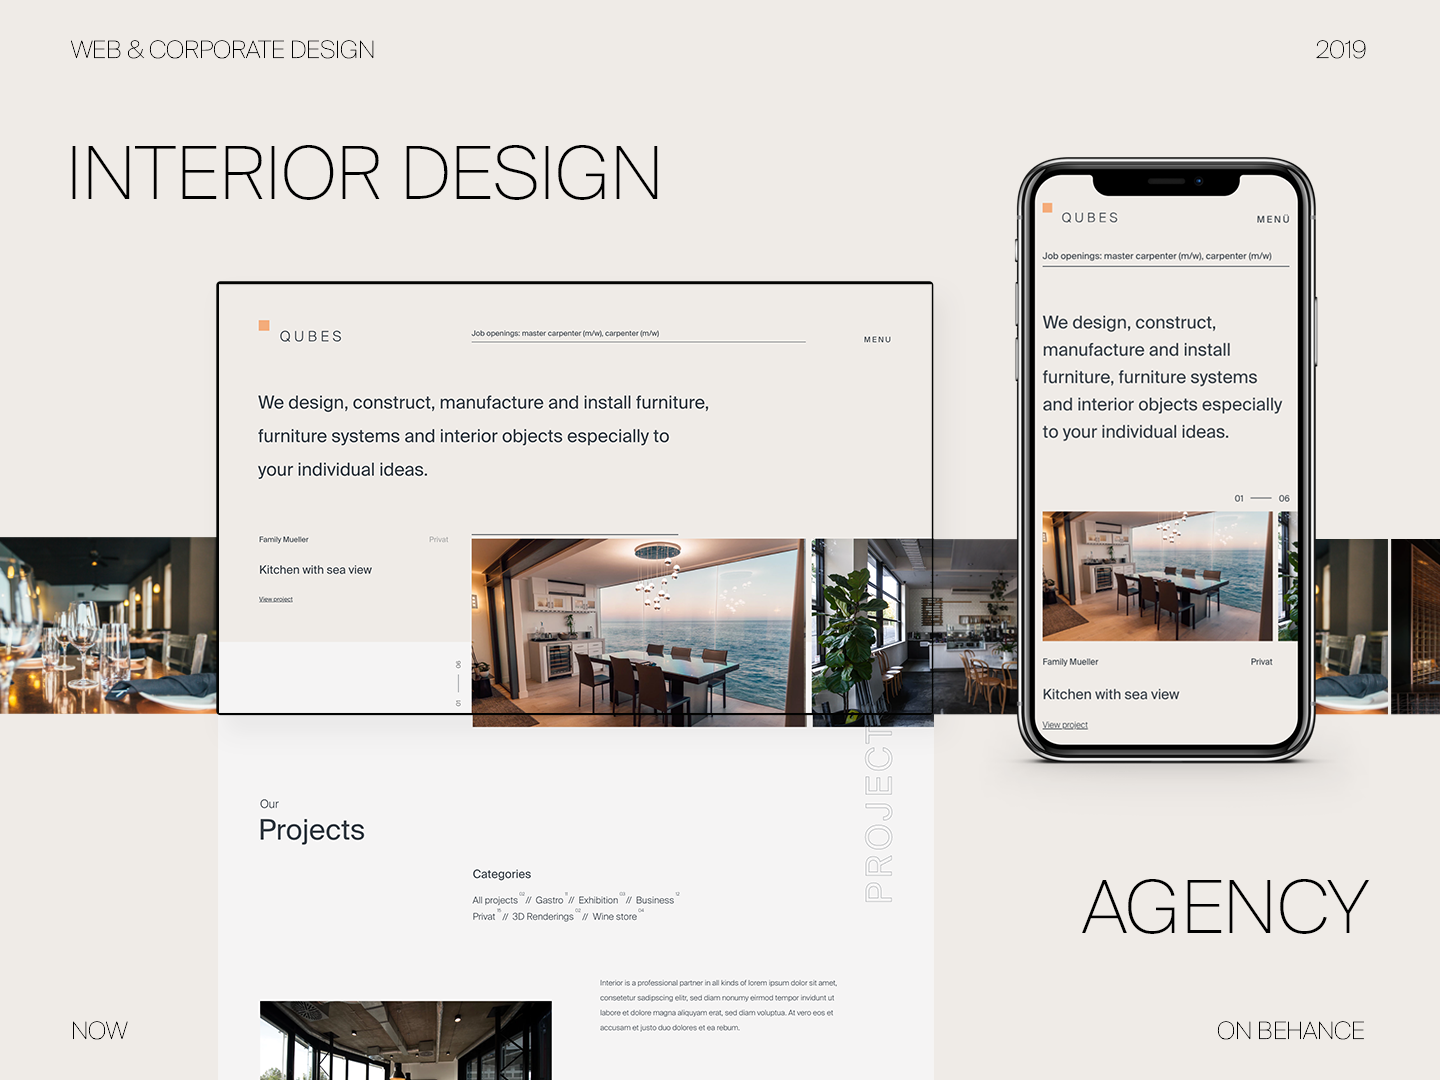 Interior Design Agency Portfolio Website By Norman Dubois For Dorfjungs On Dribbble